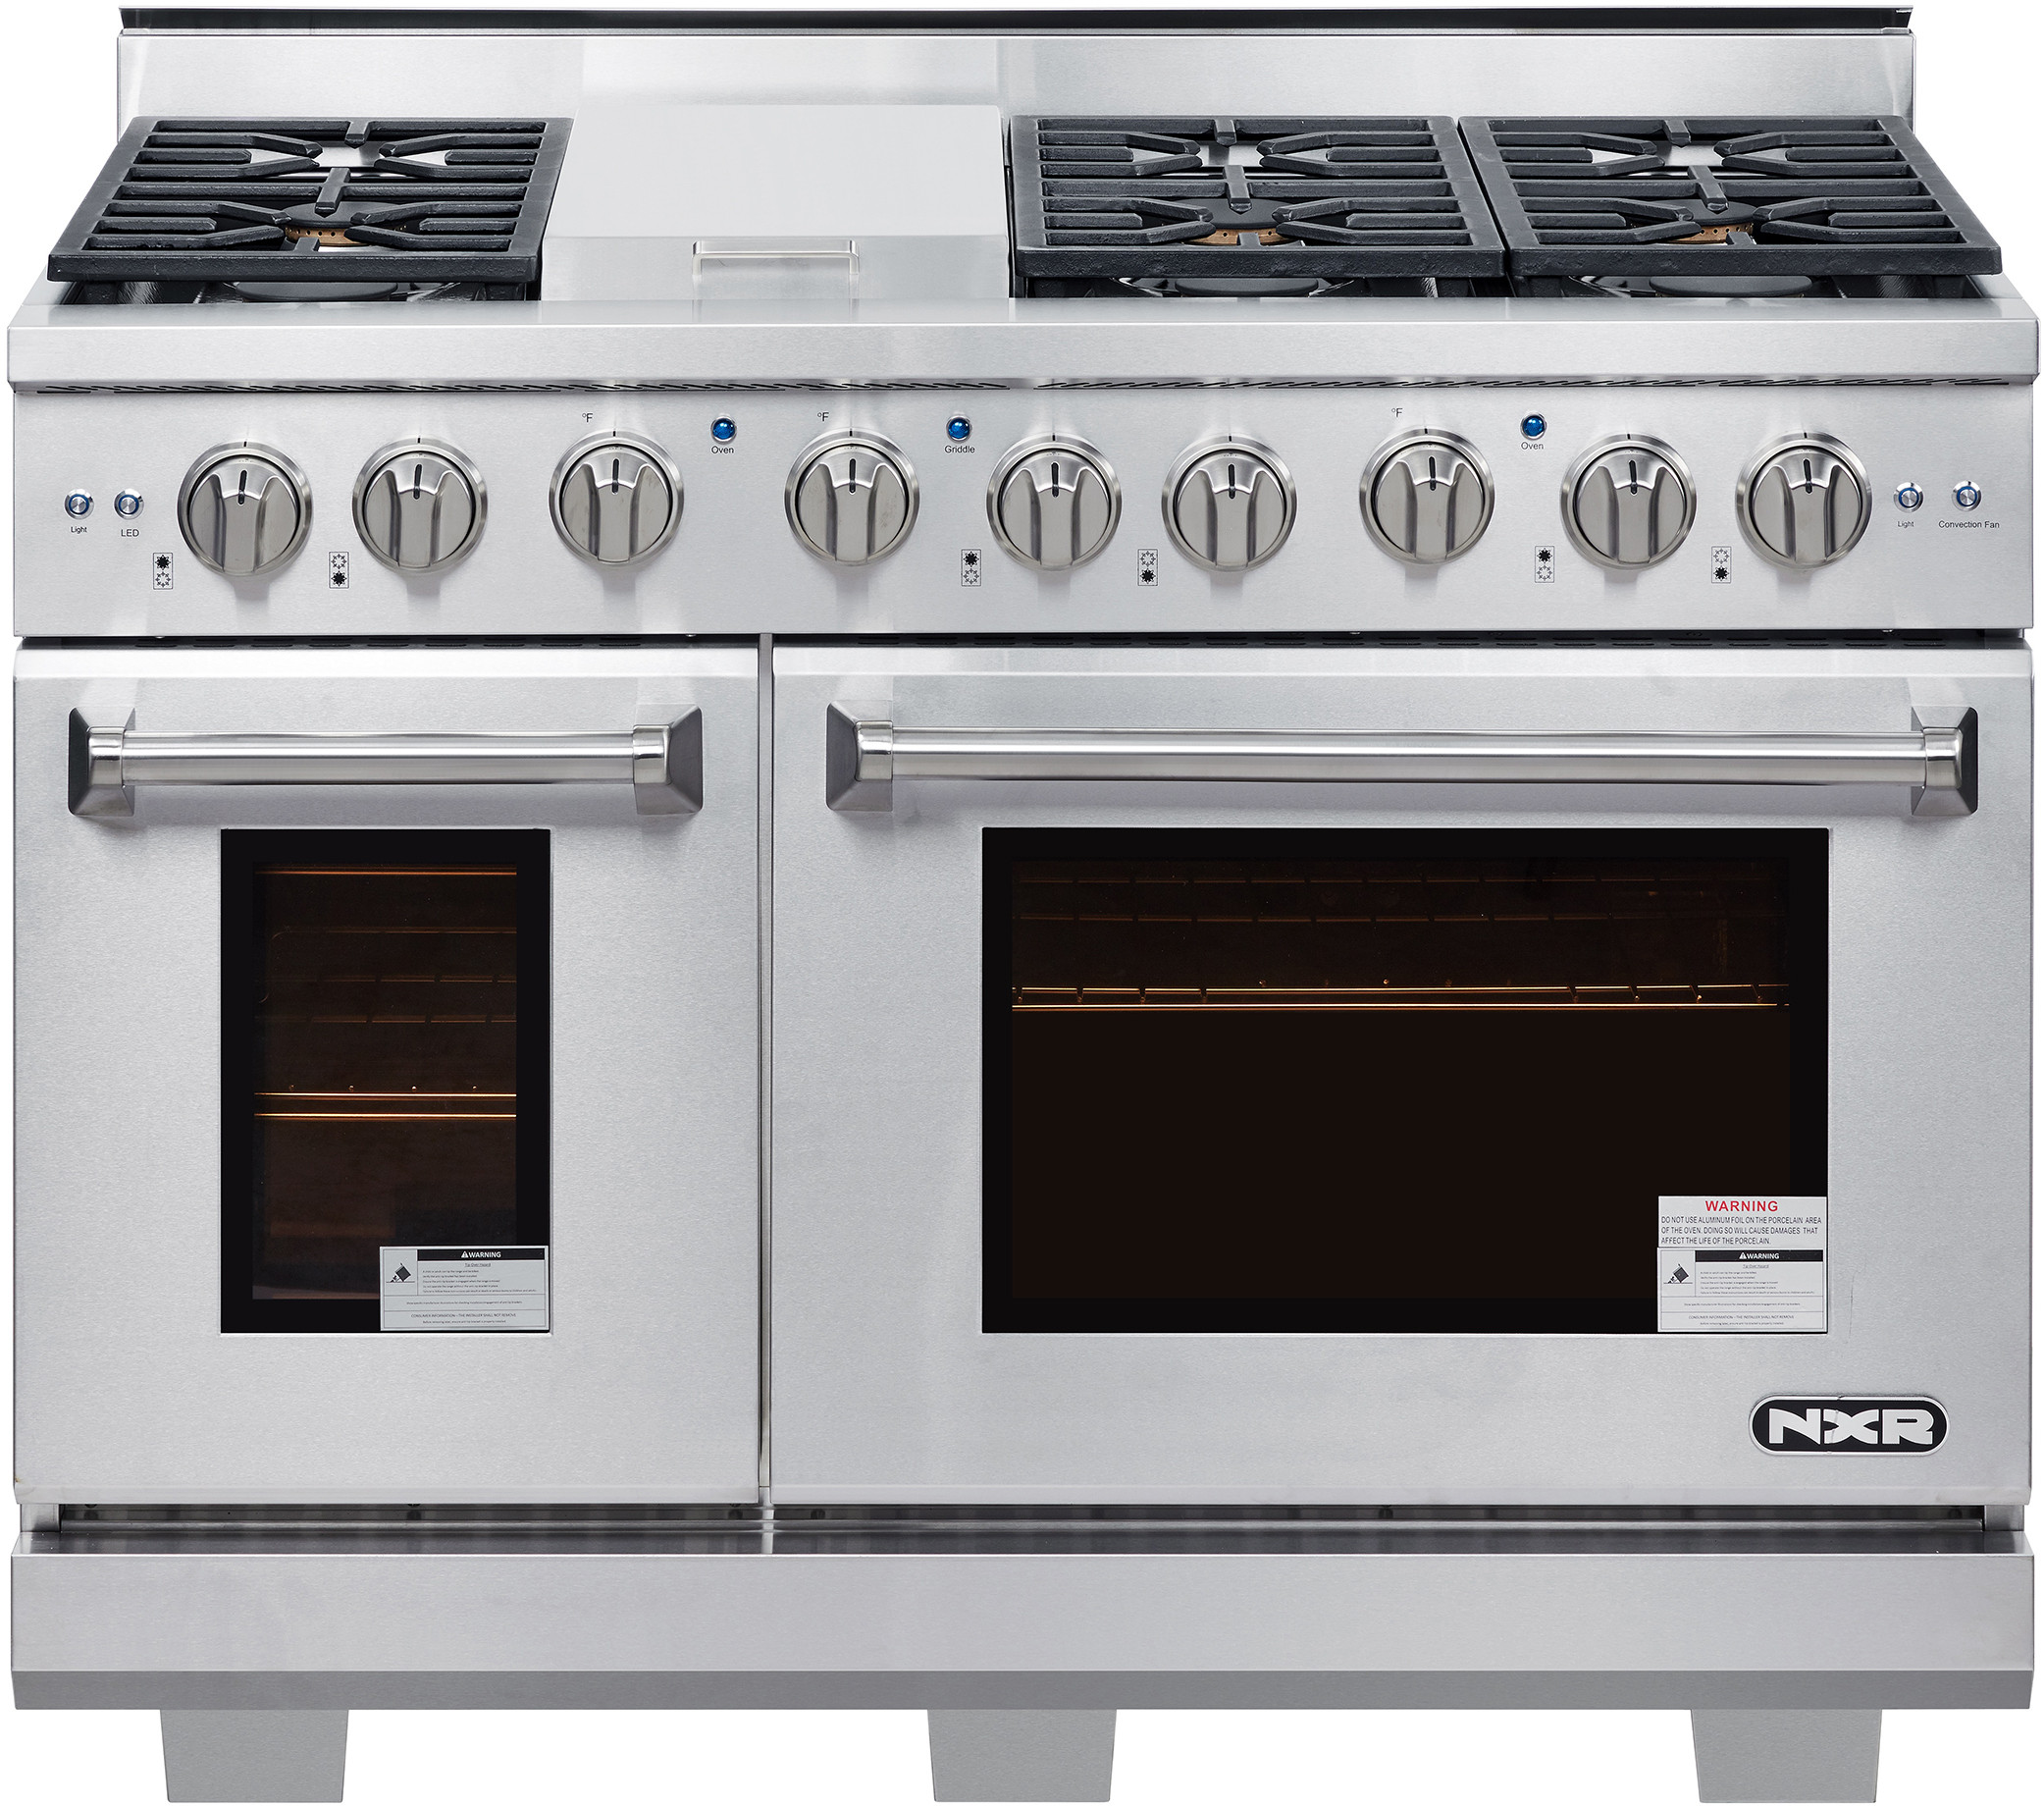 Nxr Ak4807 48 Inch Professional Gas Range With 6 German Tower Dual Flow Burners 7 2 Cu Ft Oven Capacity Continuous Cast Iron Grates Infrared Broiler 18k Btu Griddle 81k Btu Load Blue